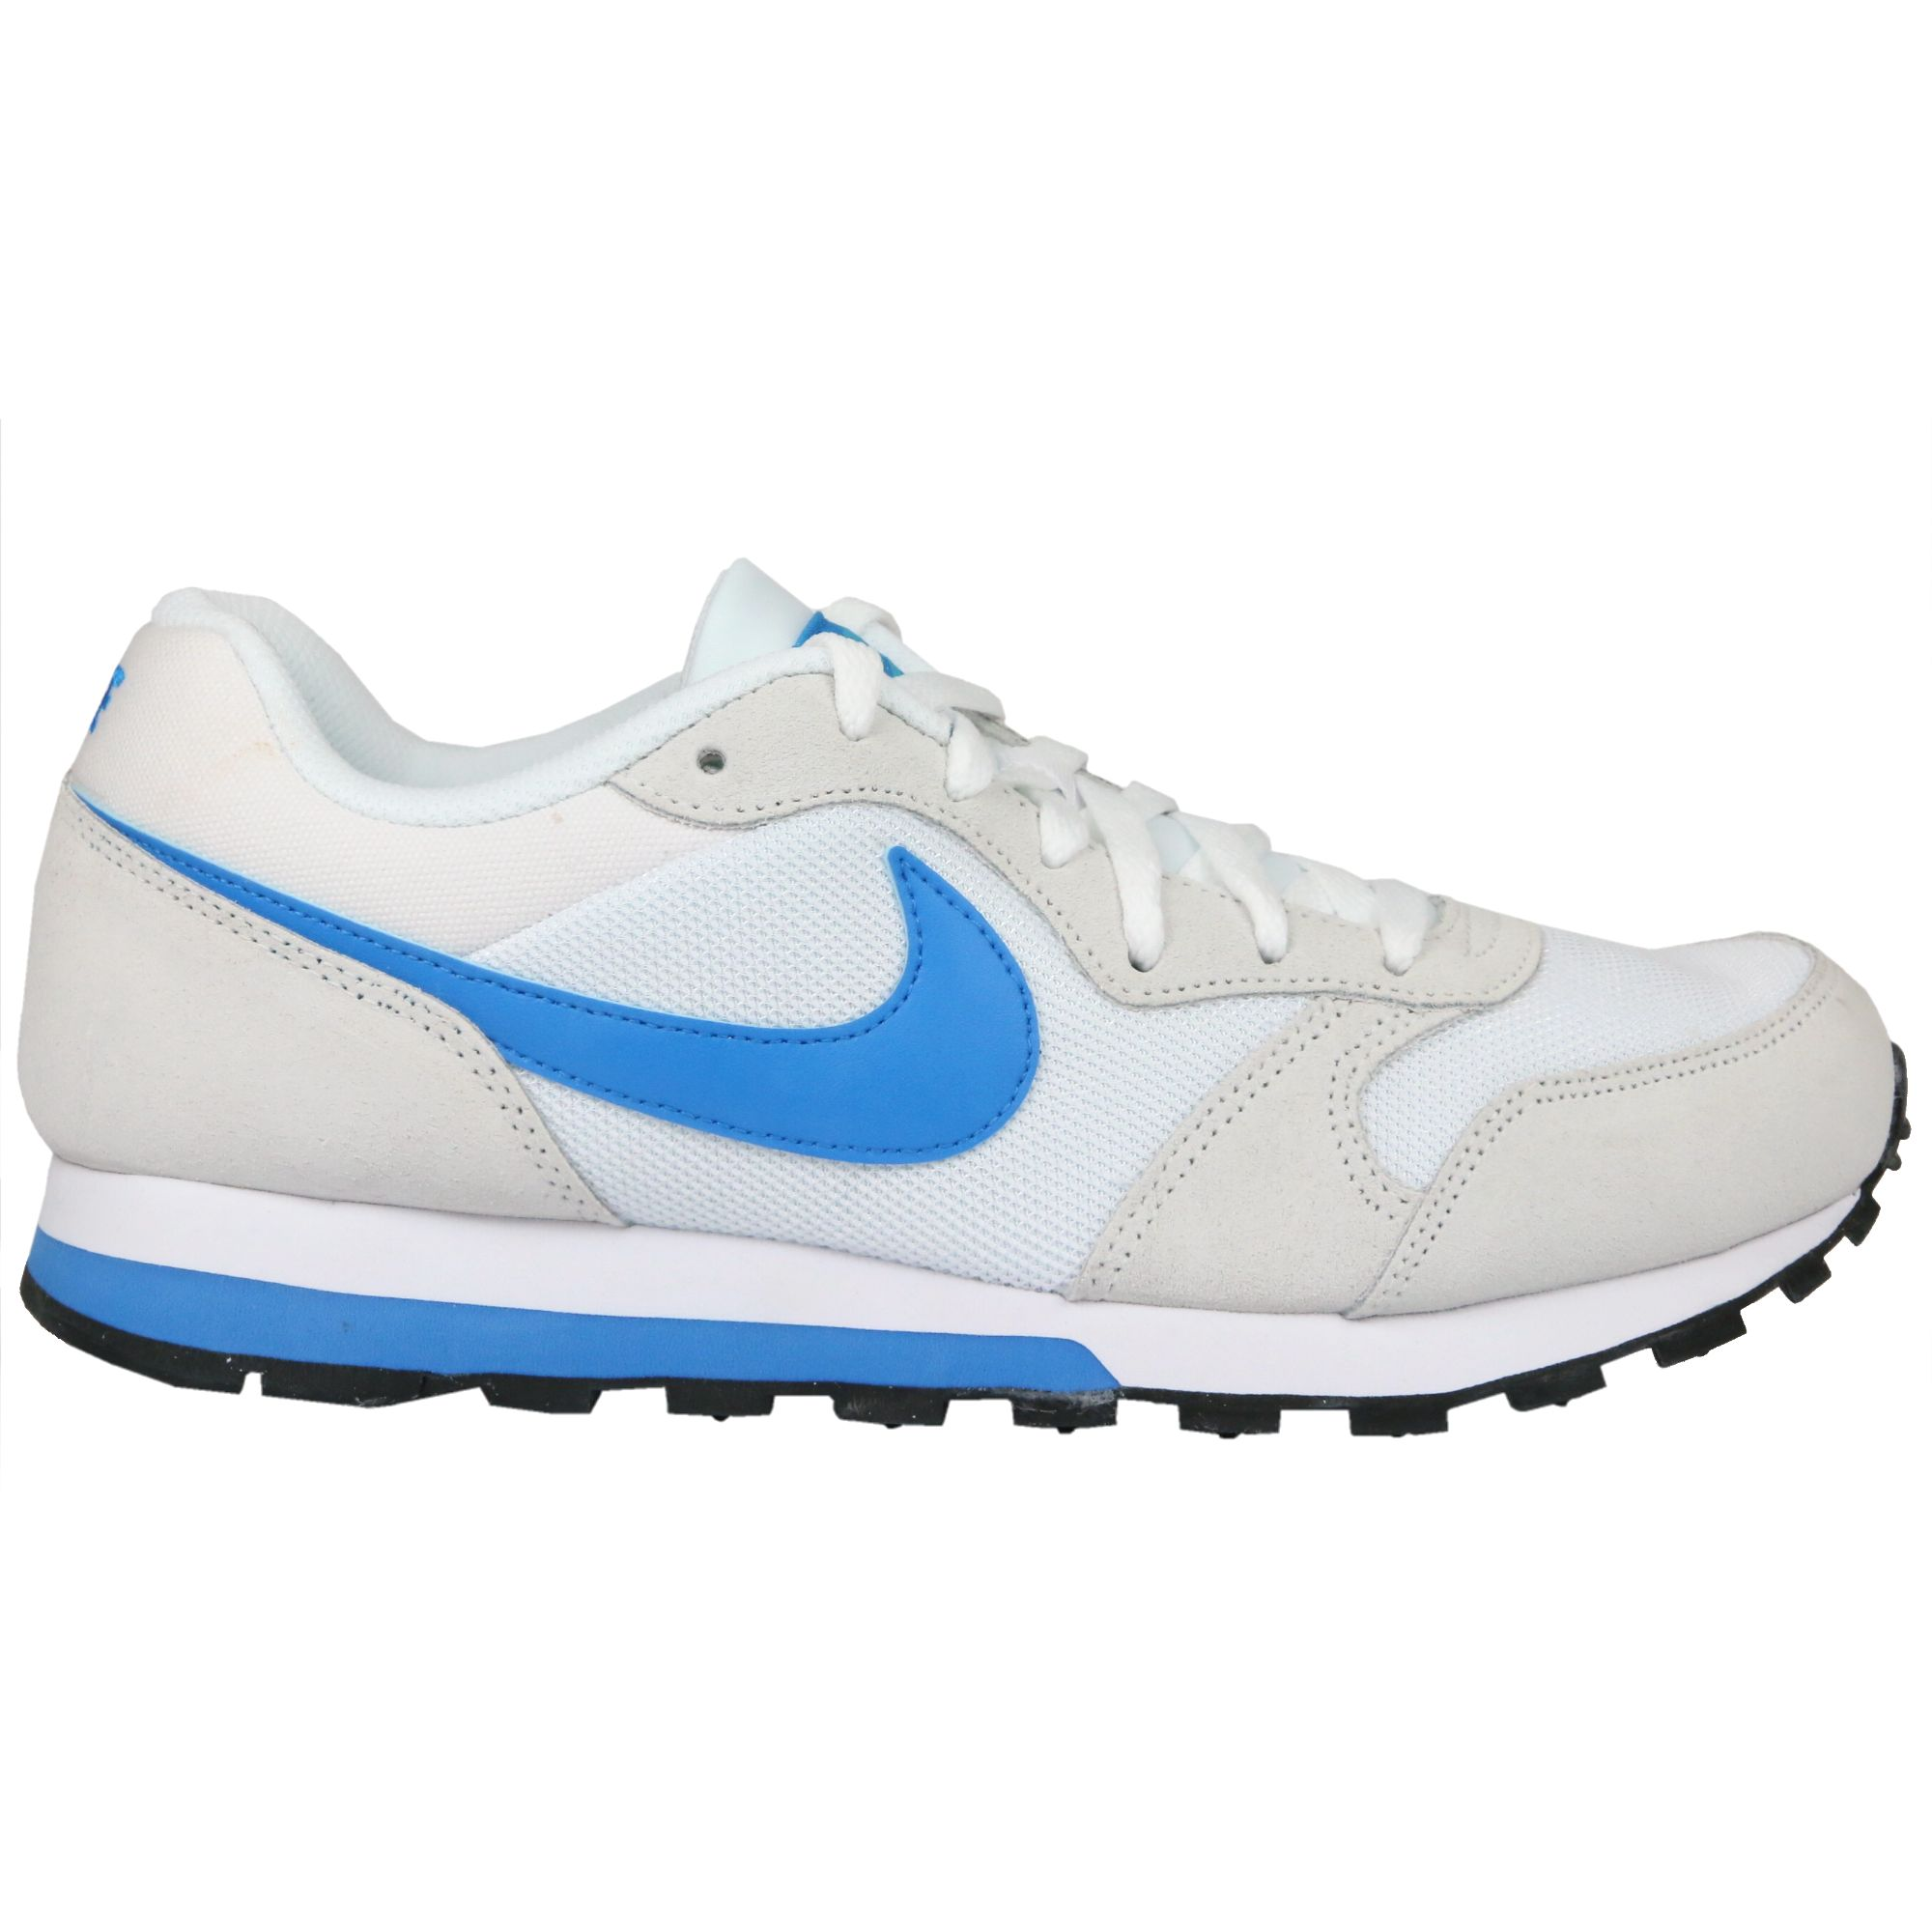 nike md runner 2 shoes trainers sneakers men 39 s ebay. Black Bedroom Furniture Sets. Home Design Ideas